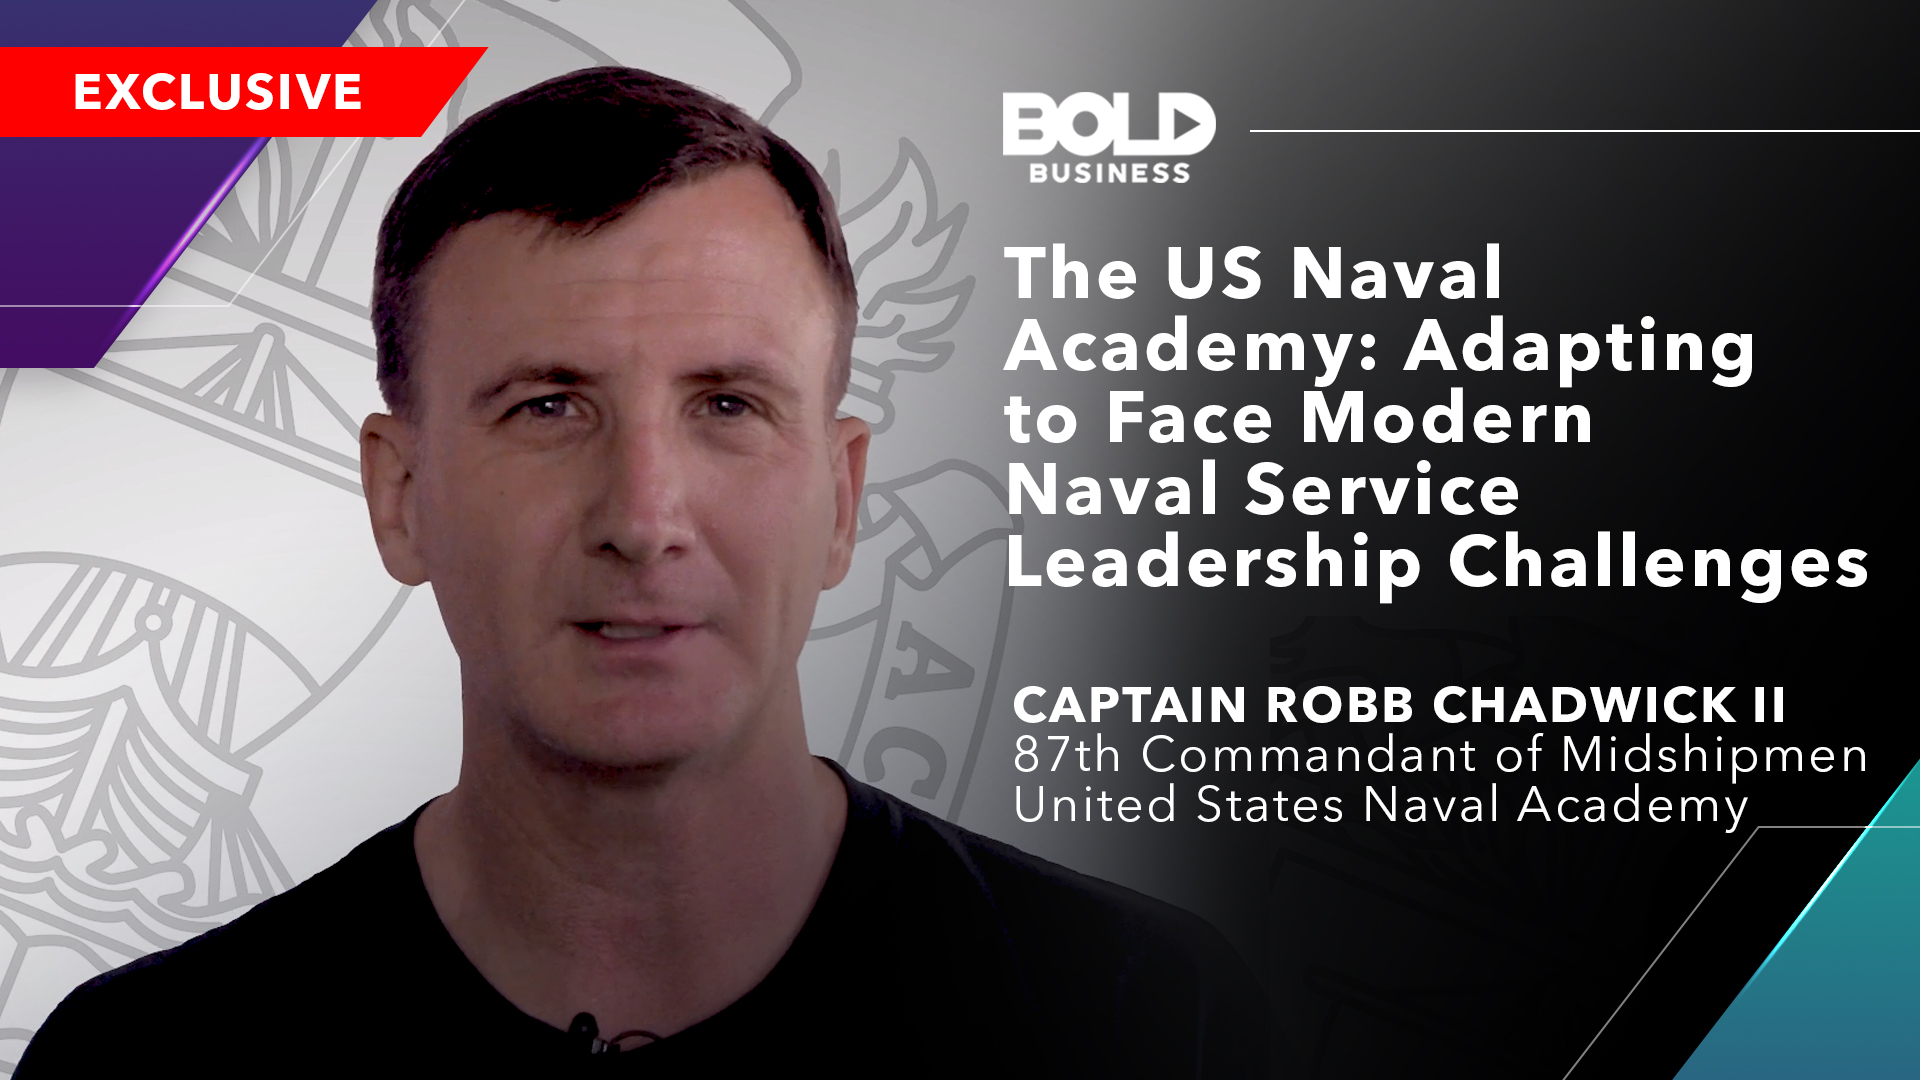 photo of Robb Chadwick in relation to how the US Naval Academy is adapting the modern navy leadership challenges